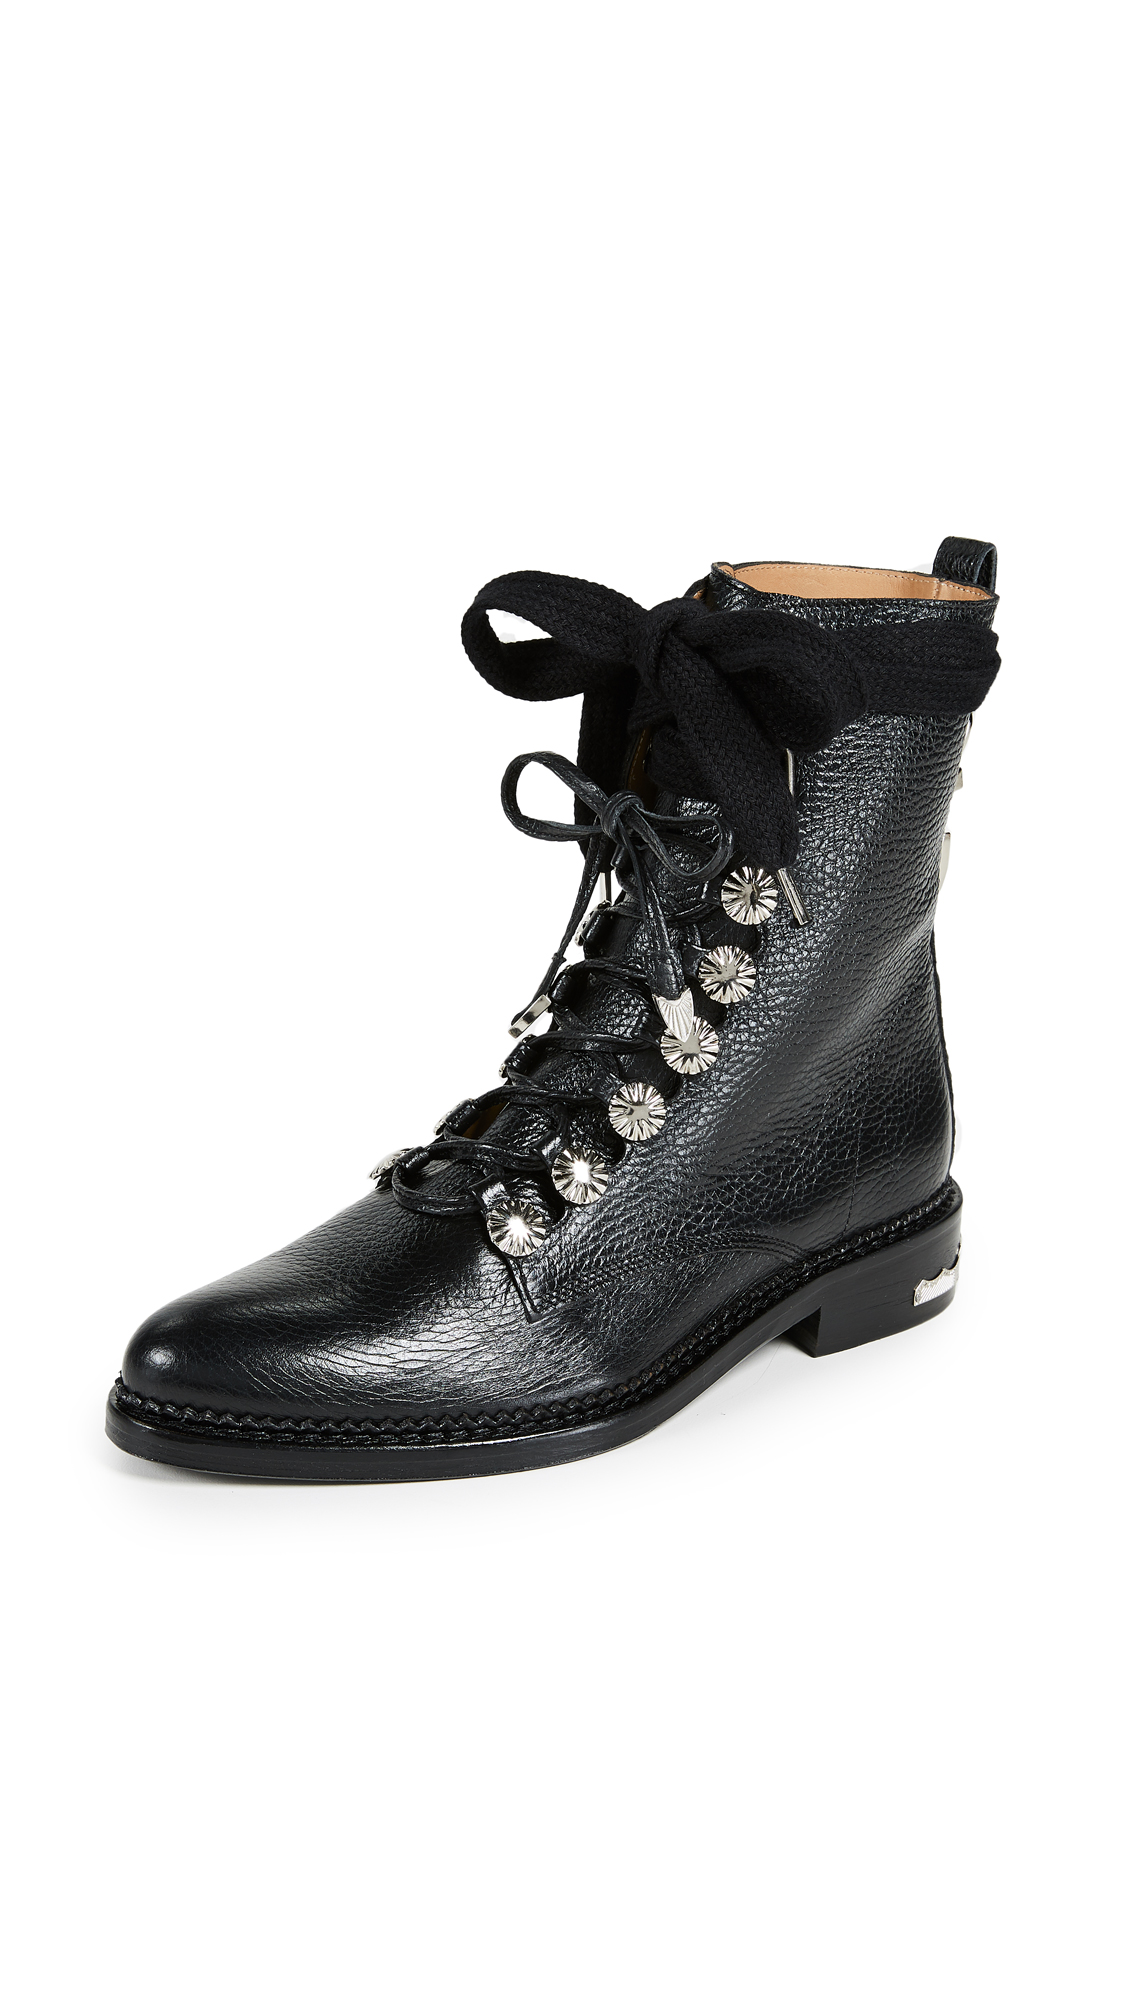 Toga Pulla Lace Up Combat Boots - Black